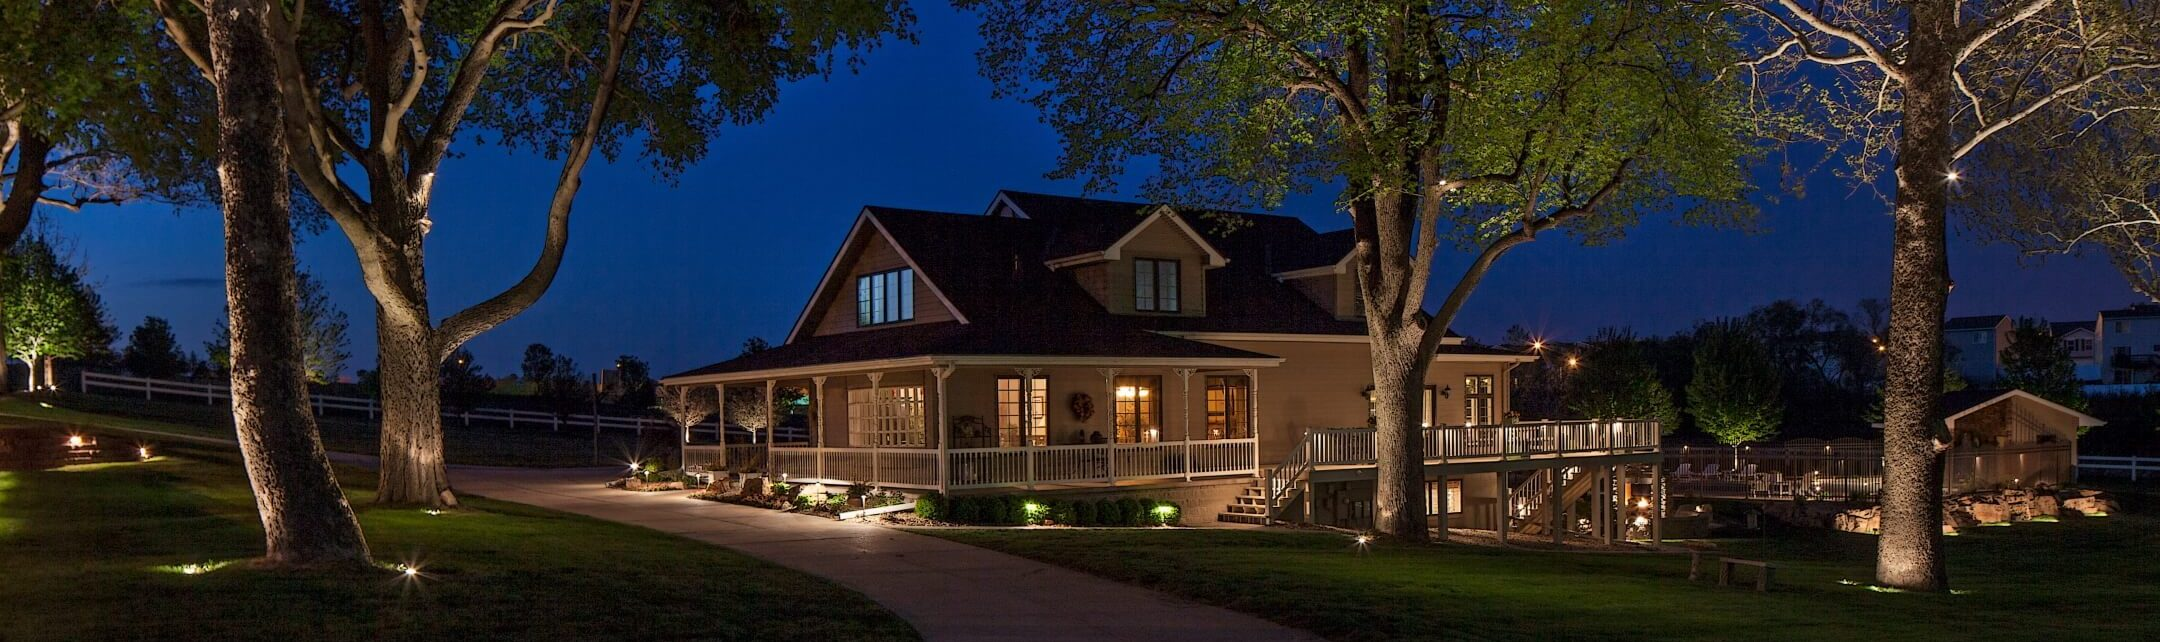 Outdoor Landscape Lighting Professional : Outdoor lighting services mckay landscape omaha ne